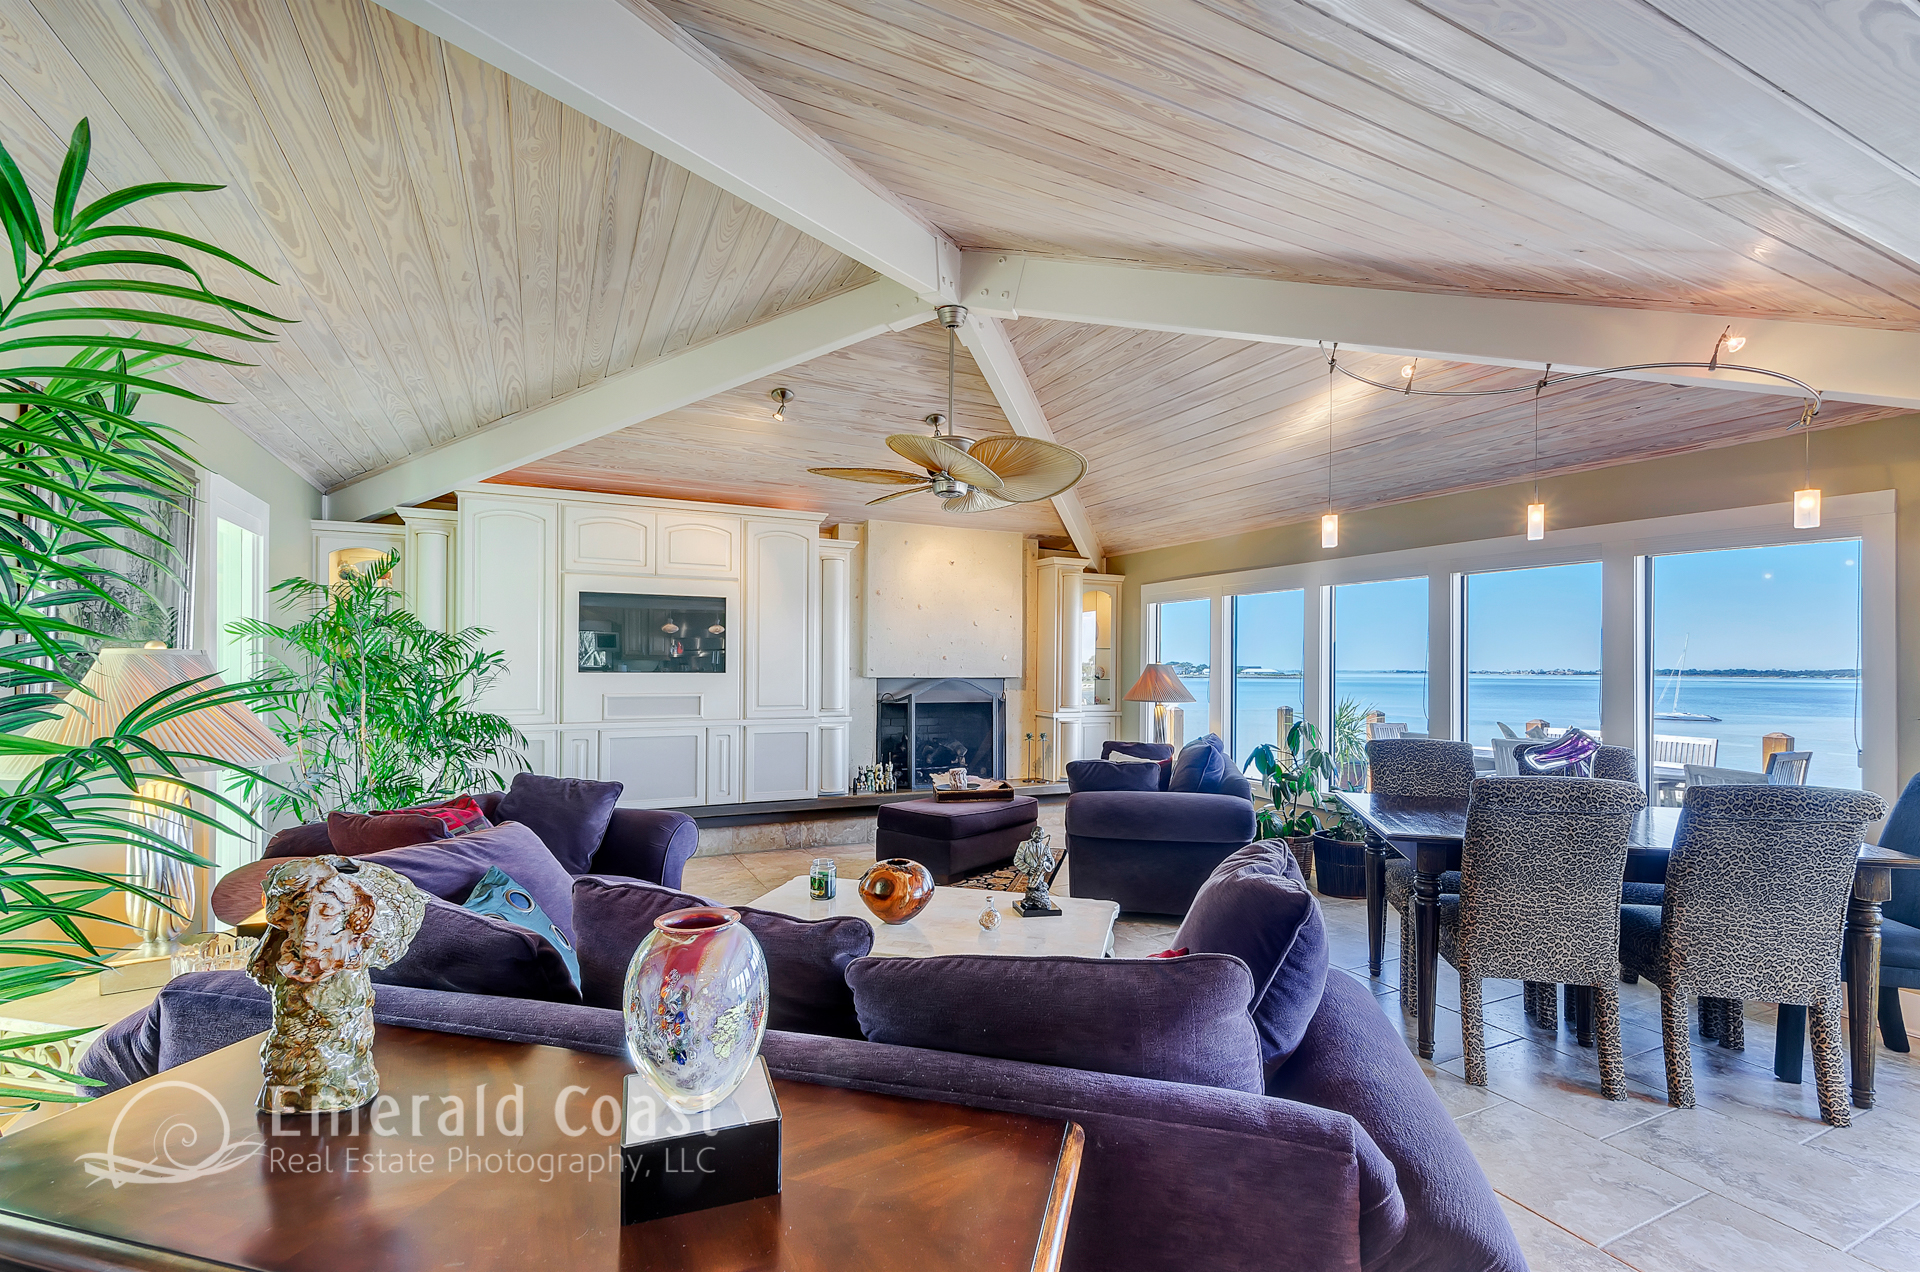 Craigslist Fort Walton Beach >> Emerald Coast Real Estate Photography » Pensacola Real Estate Photography